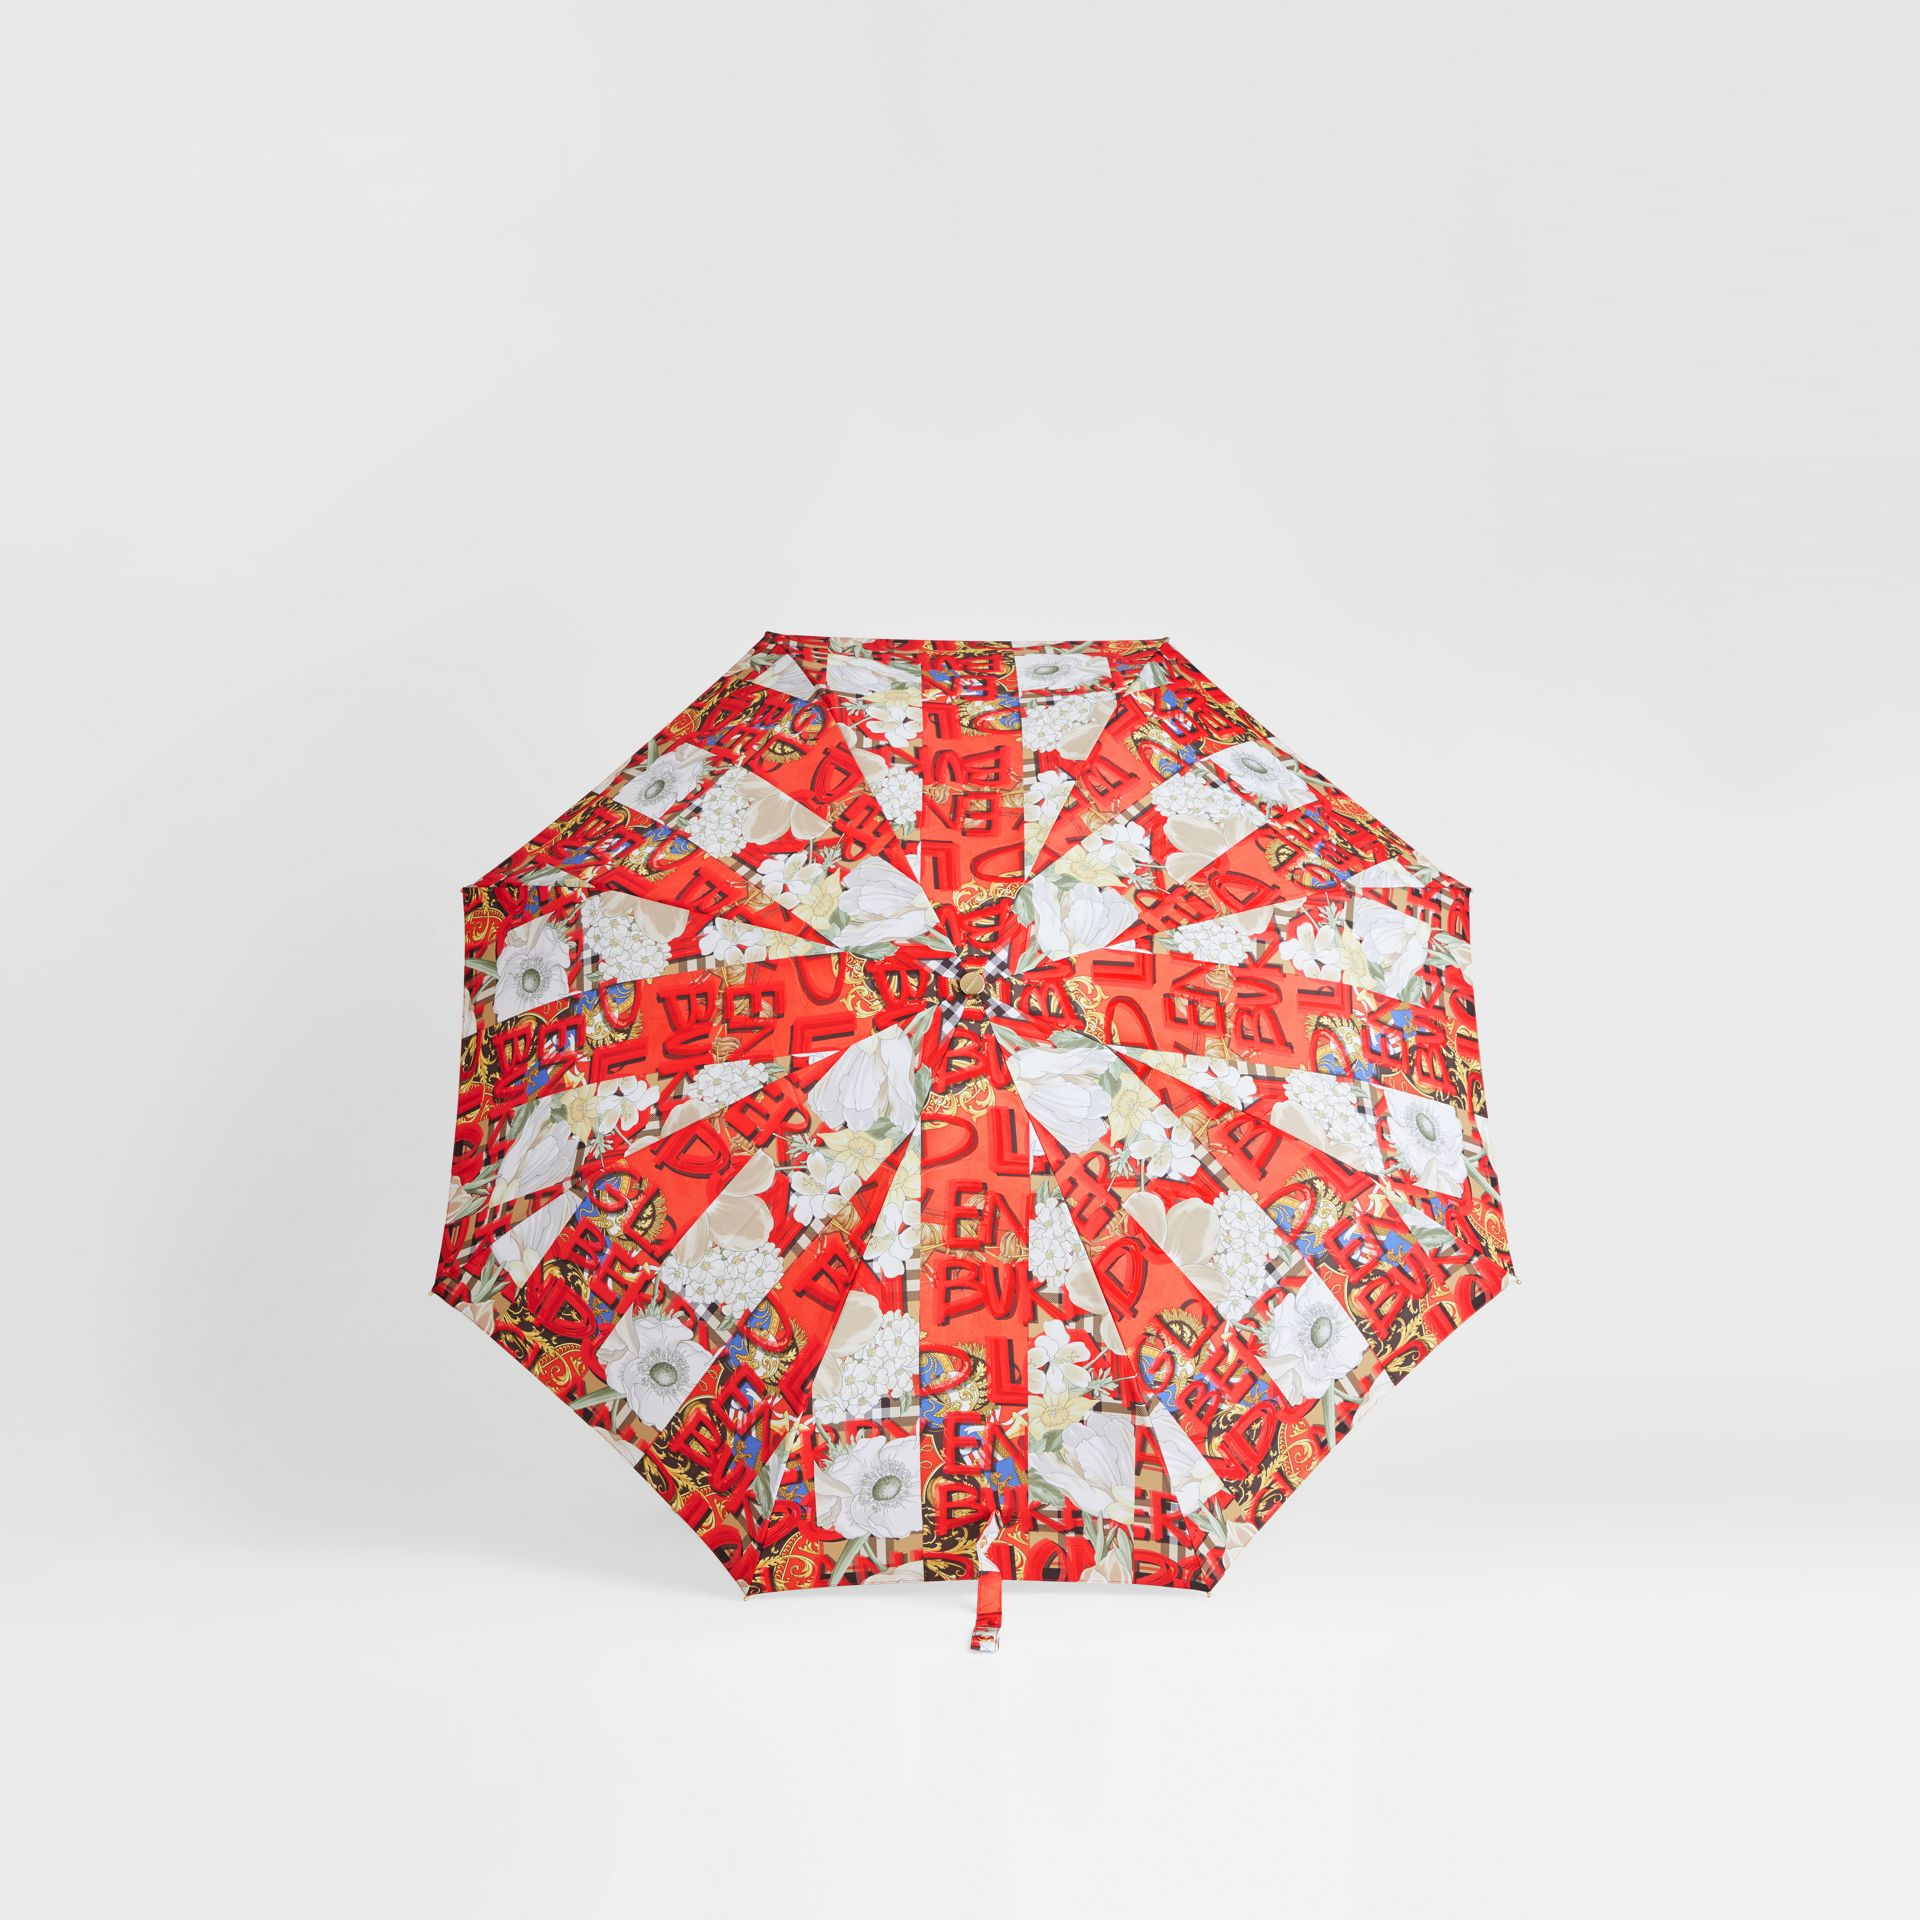 Graffiti Archive Scarf Print Folding Umbrella in Multicolour | Burberry - gallery image 2